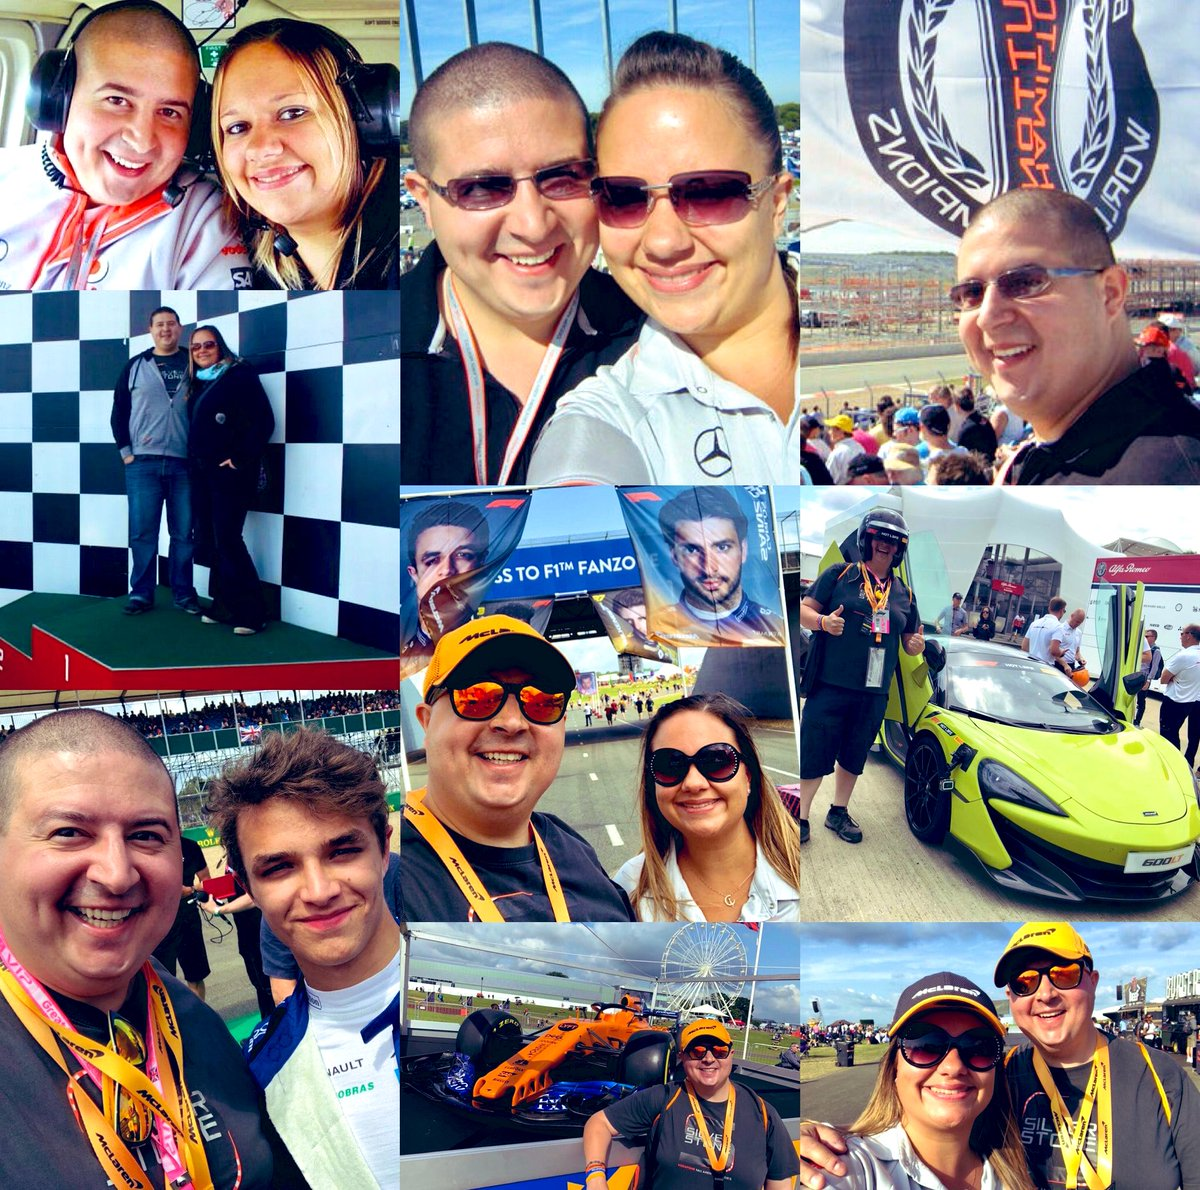 @SilverstoneUK @McLarenF1 @F1 I have so many favourite McLaren memories supporting the team; a helicopter ride over the circuit, standing on the podium during a tour; meeting Lando on the grid after my #F1PirelliHotlaps experience, sitting opposite @SilverstoneWing when it was being built with Mrs B! #MCL35 https://t.co/QAVyfo4qyt